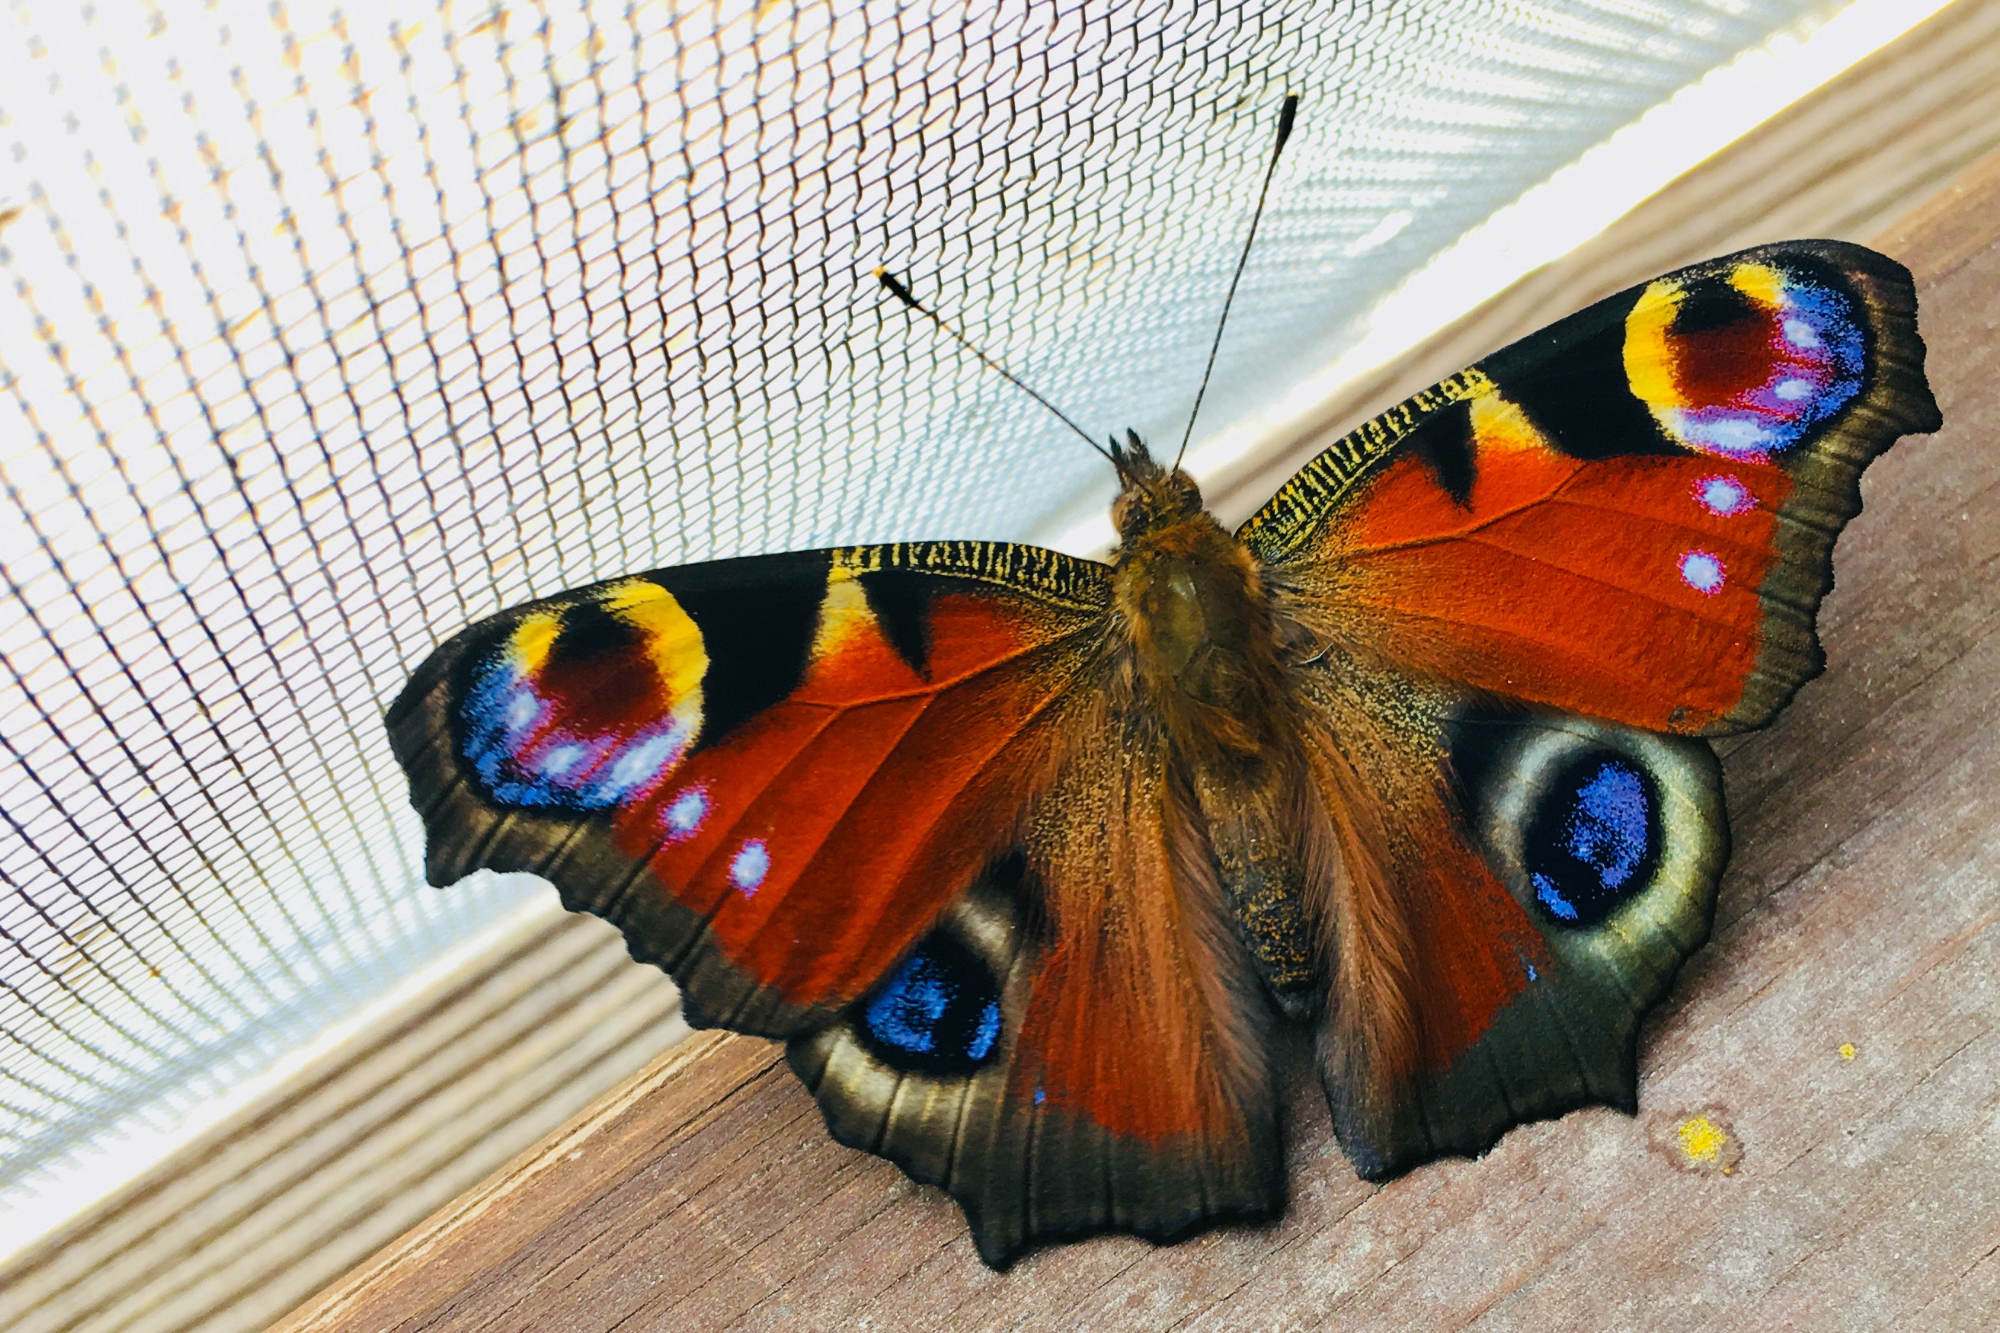 peacock butterfly on the window sill